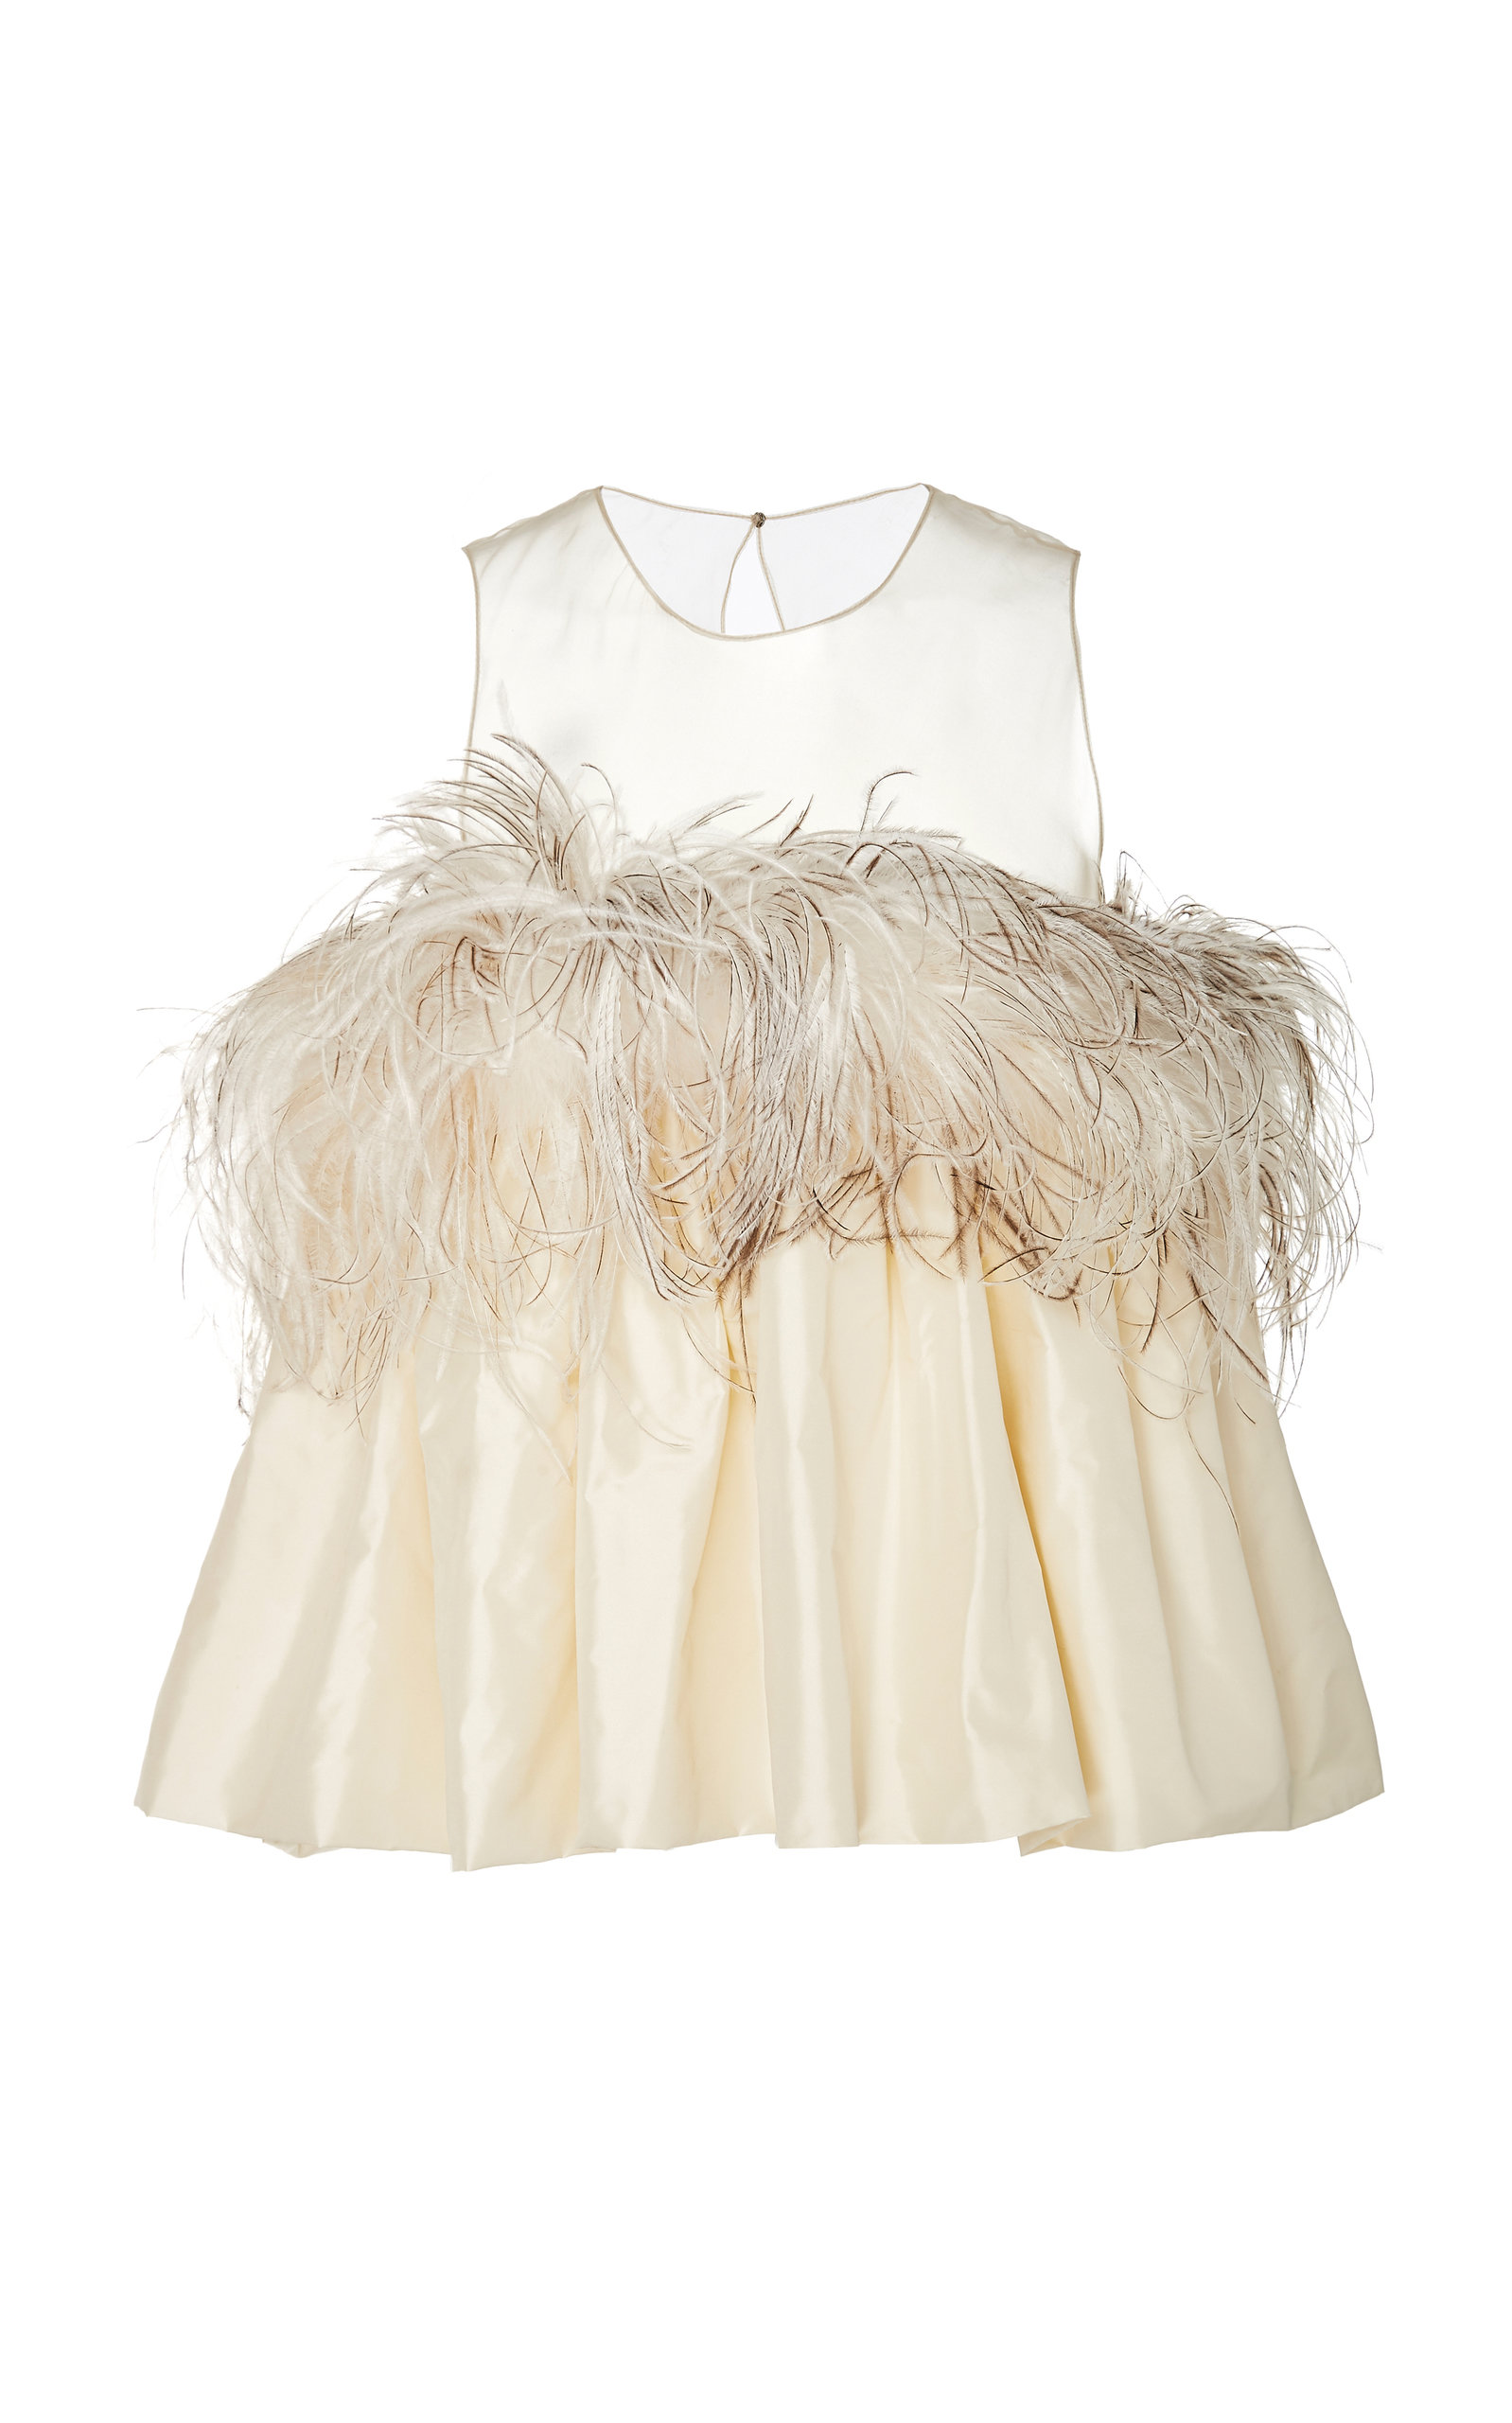 ALISON BRETT BUBBLE TOP WITH ORGANZA AND OSTRICH FEATHERS